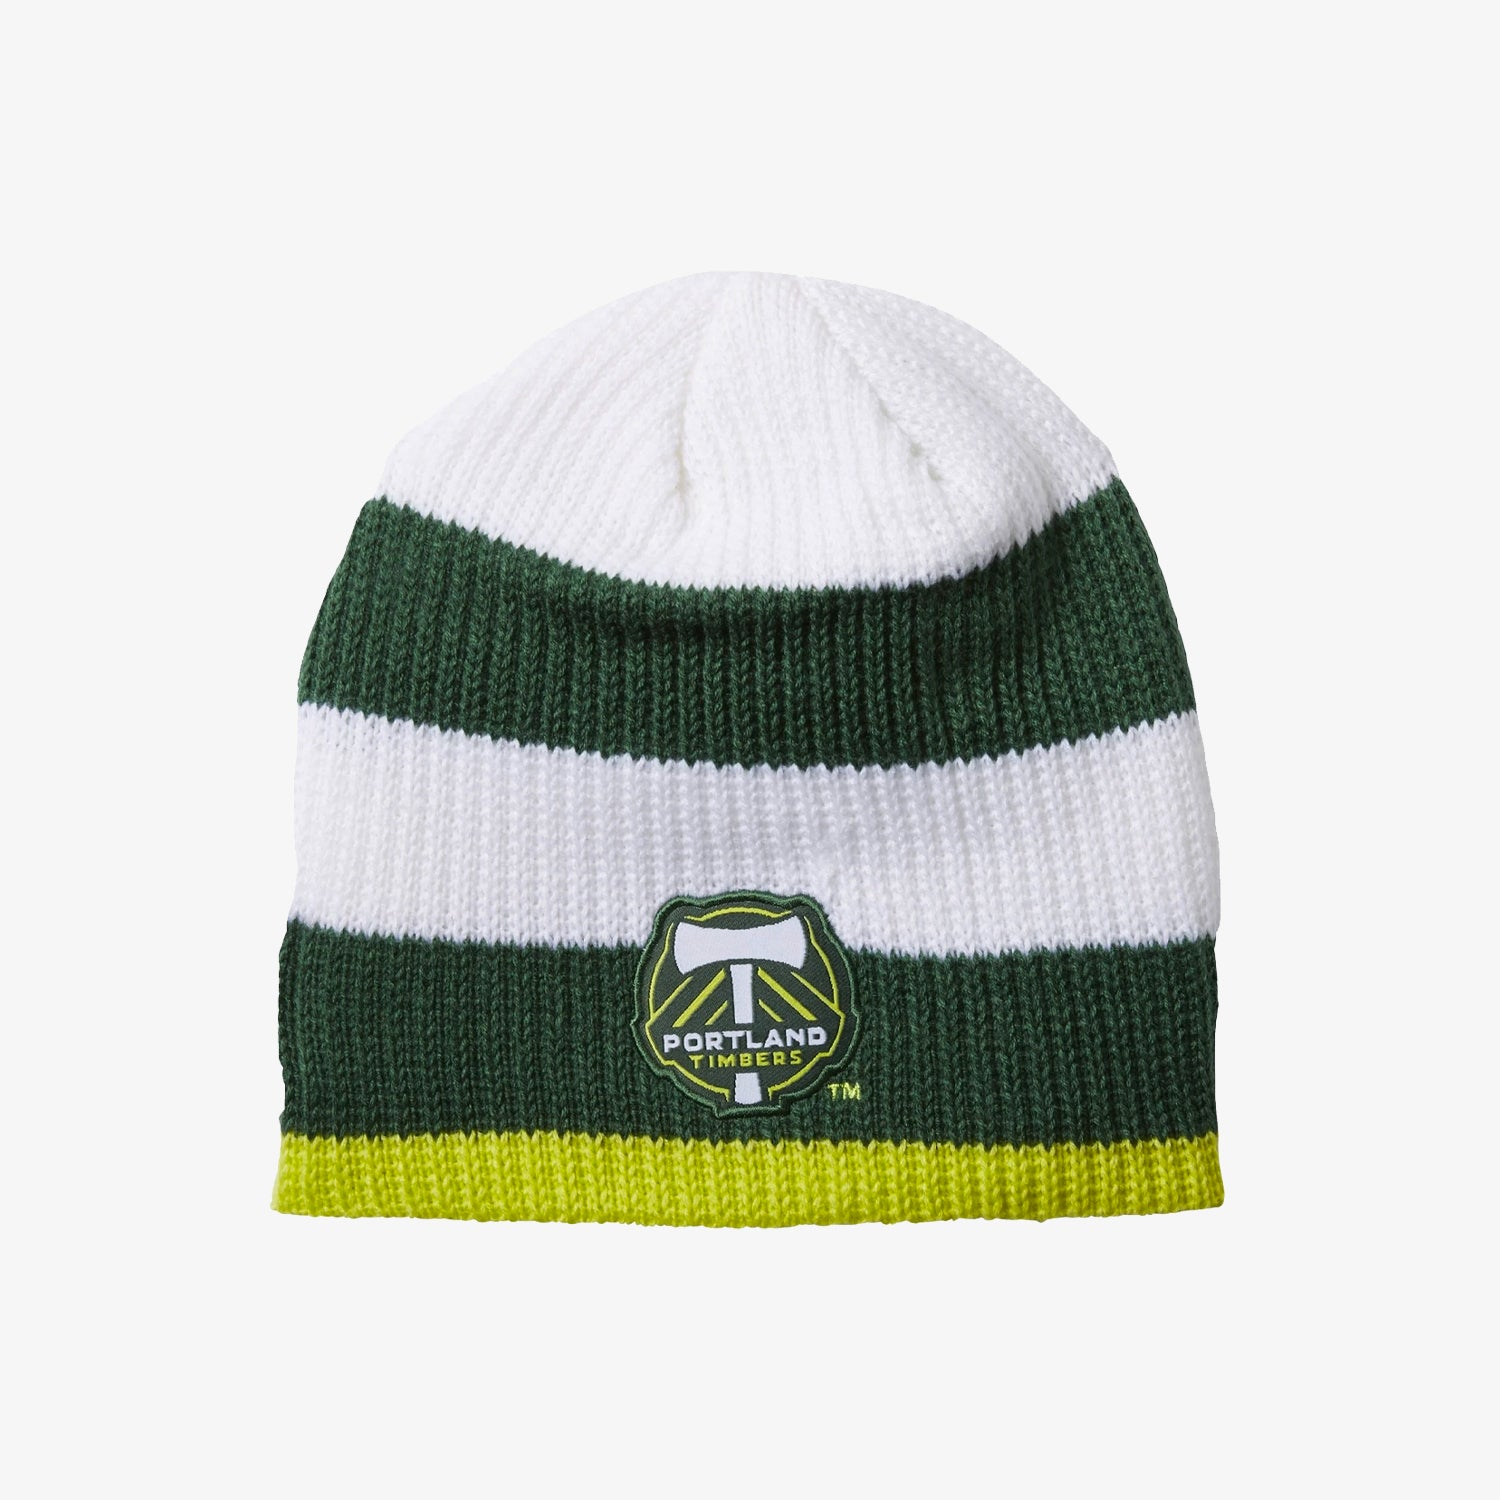 Portland timbers authentic Beanie